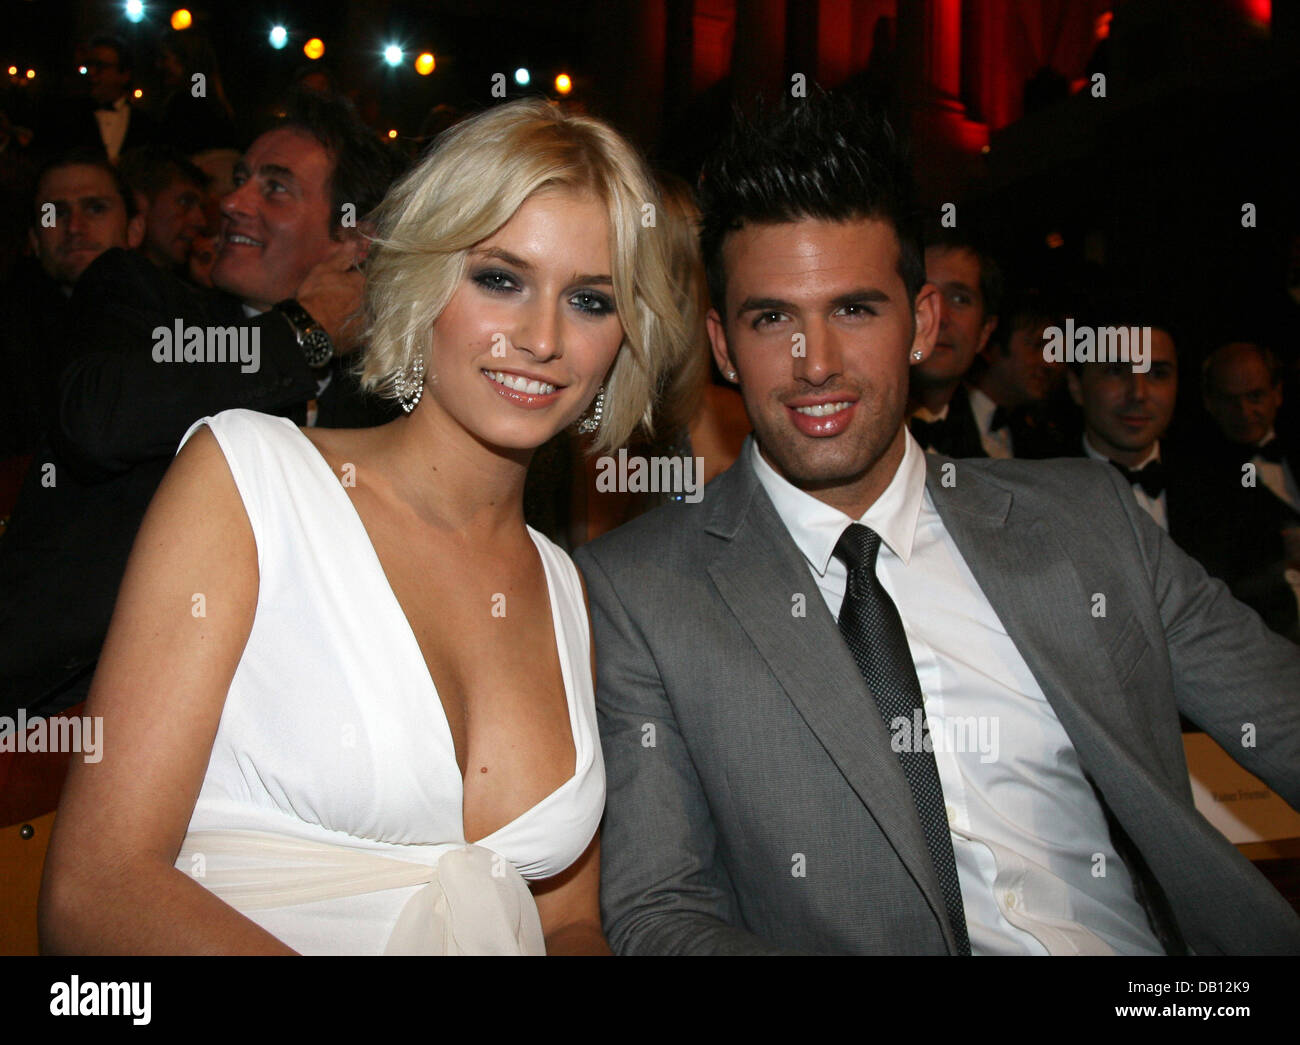 German Model Lena Gercke And Her Boyfriend Jay Khan Pose